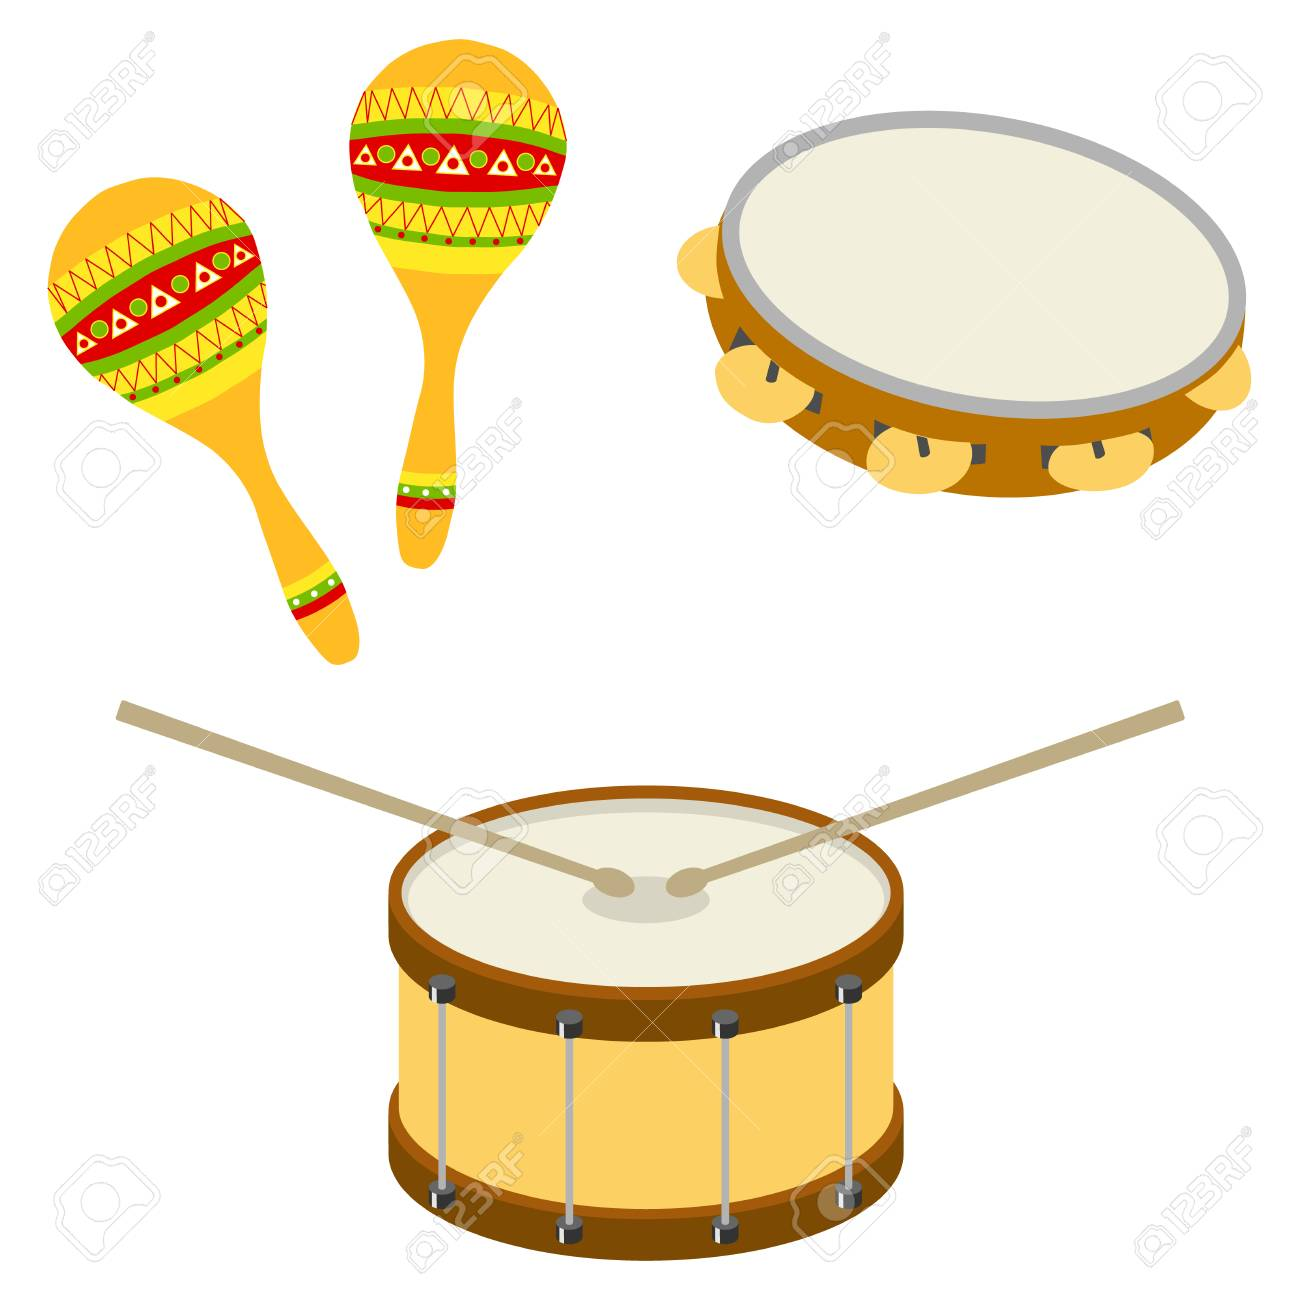 Drum, tambourine, maracas  Musical percussion instruments  Flat